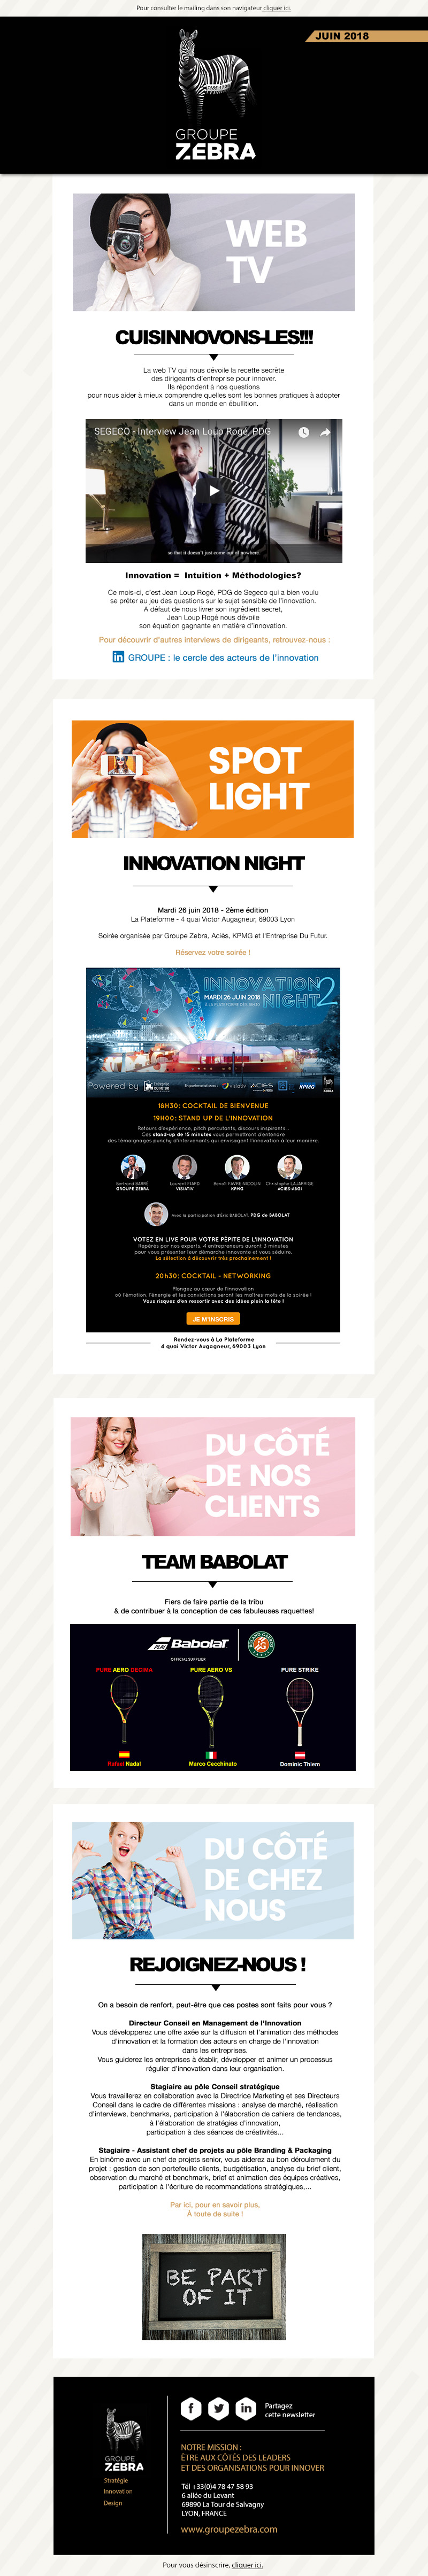 Newsletter GROUPE ZEBRA